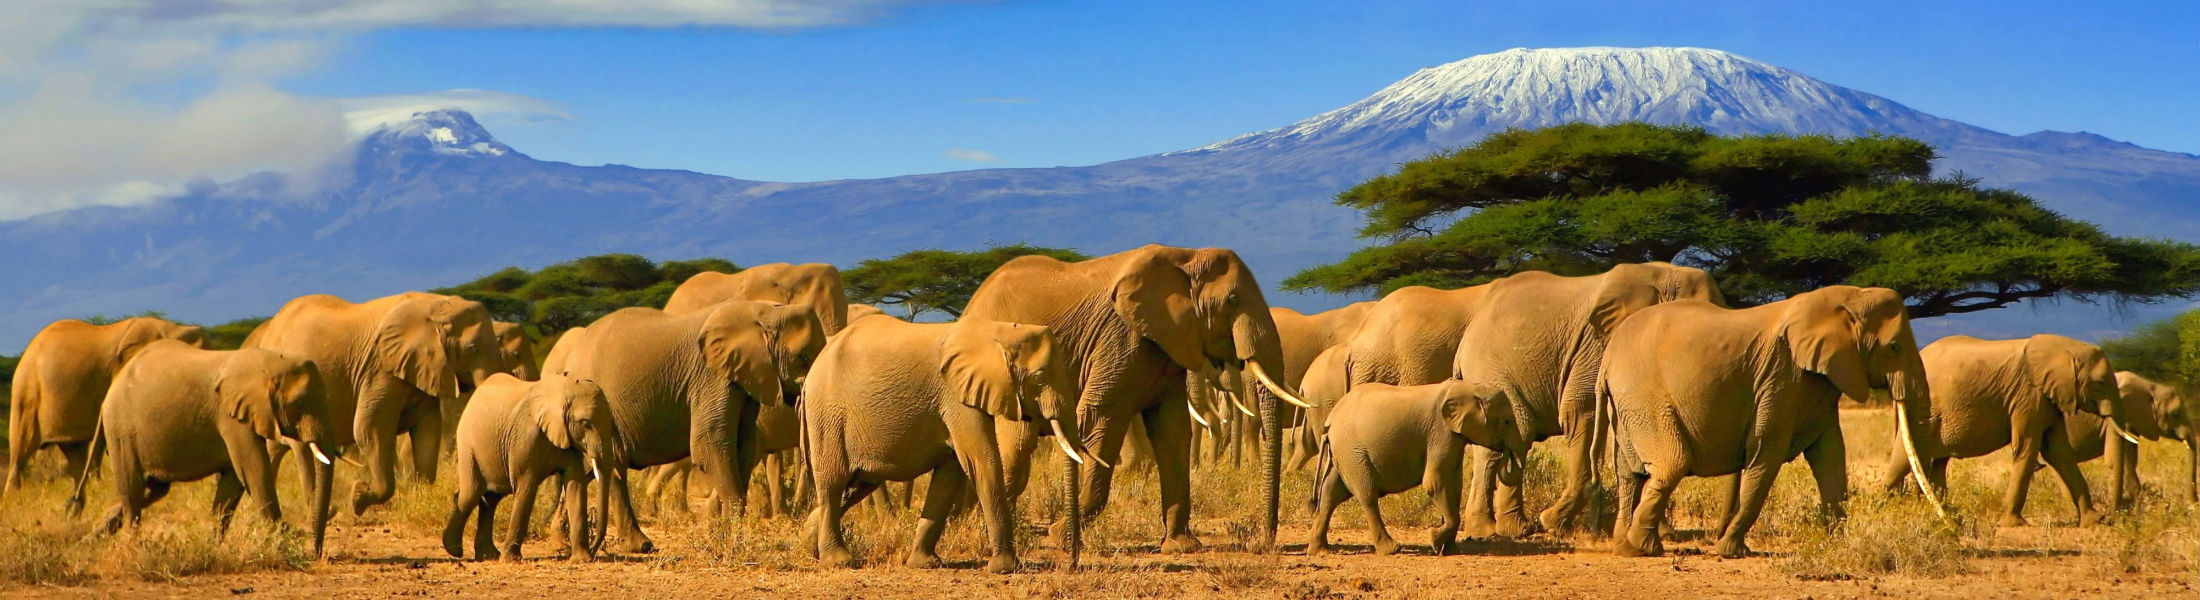 Elephants walking with Kilimanjaro behind